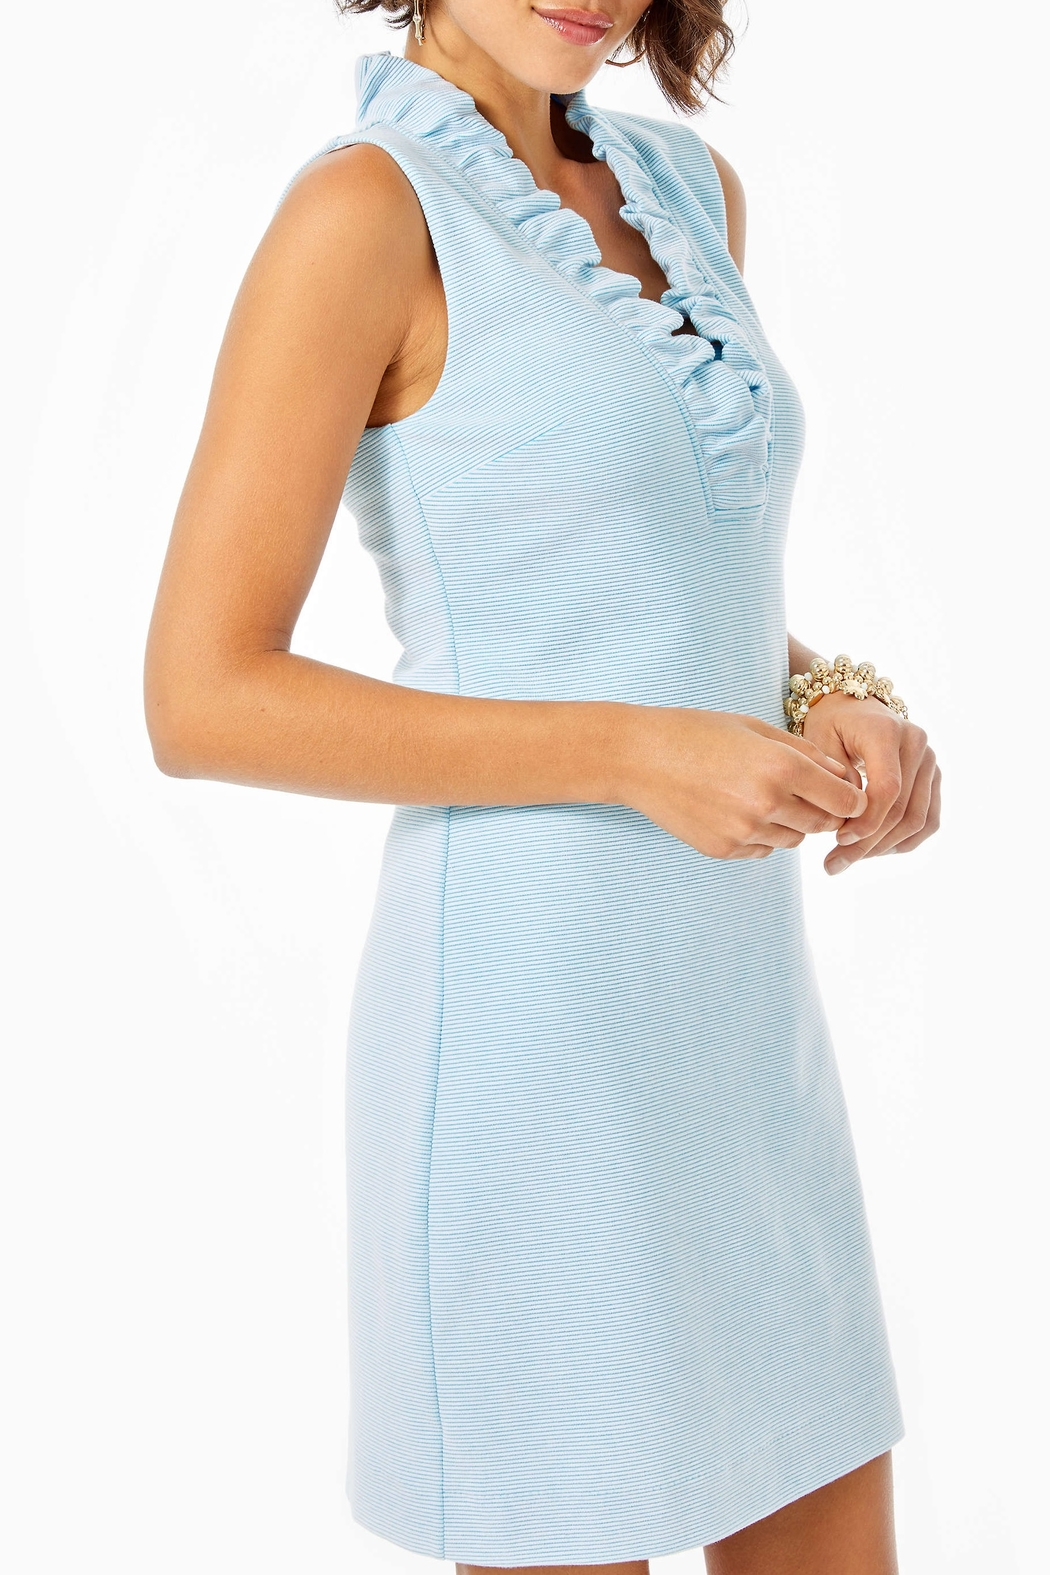 Lilly Pulitzer  Tisbury Shift Dress - Main Image